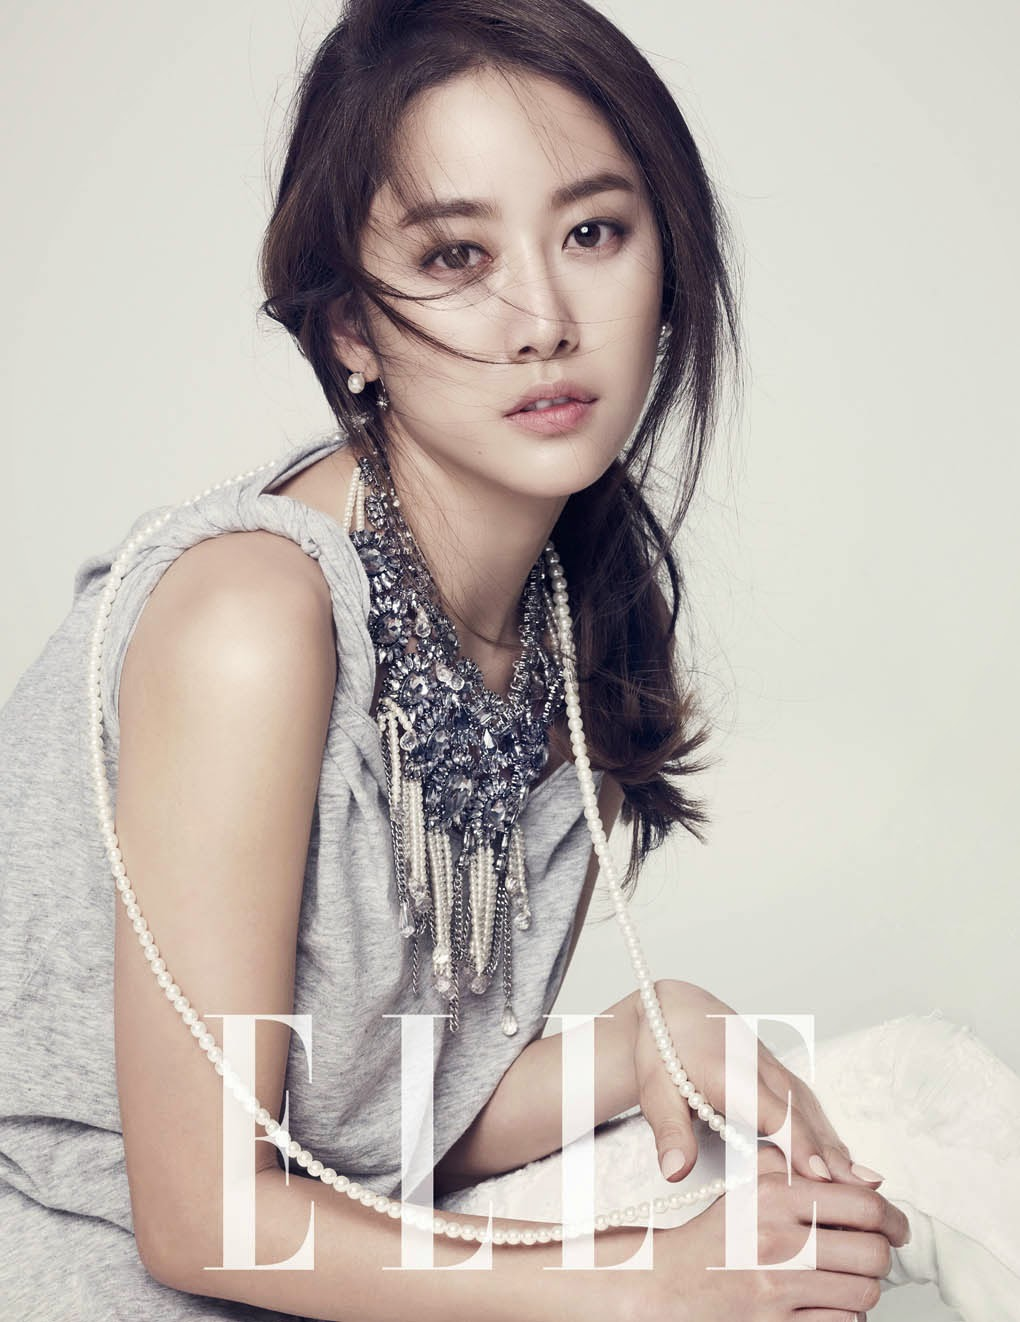 Jeon Hye Bin - Elle Magazine February Issue 2014